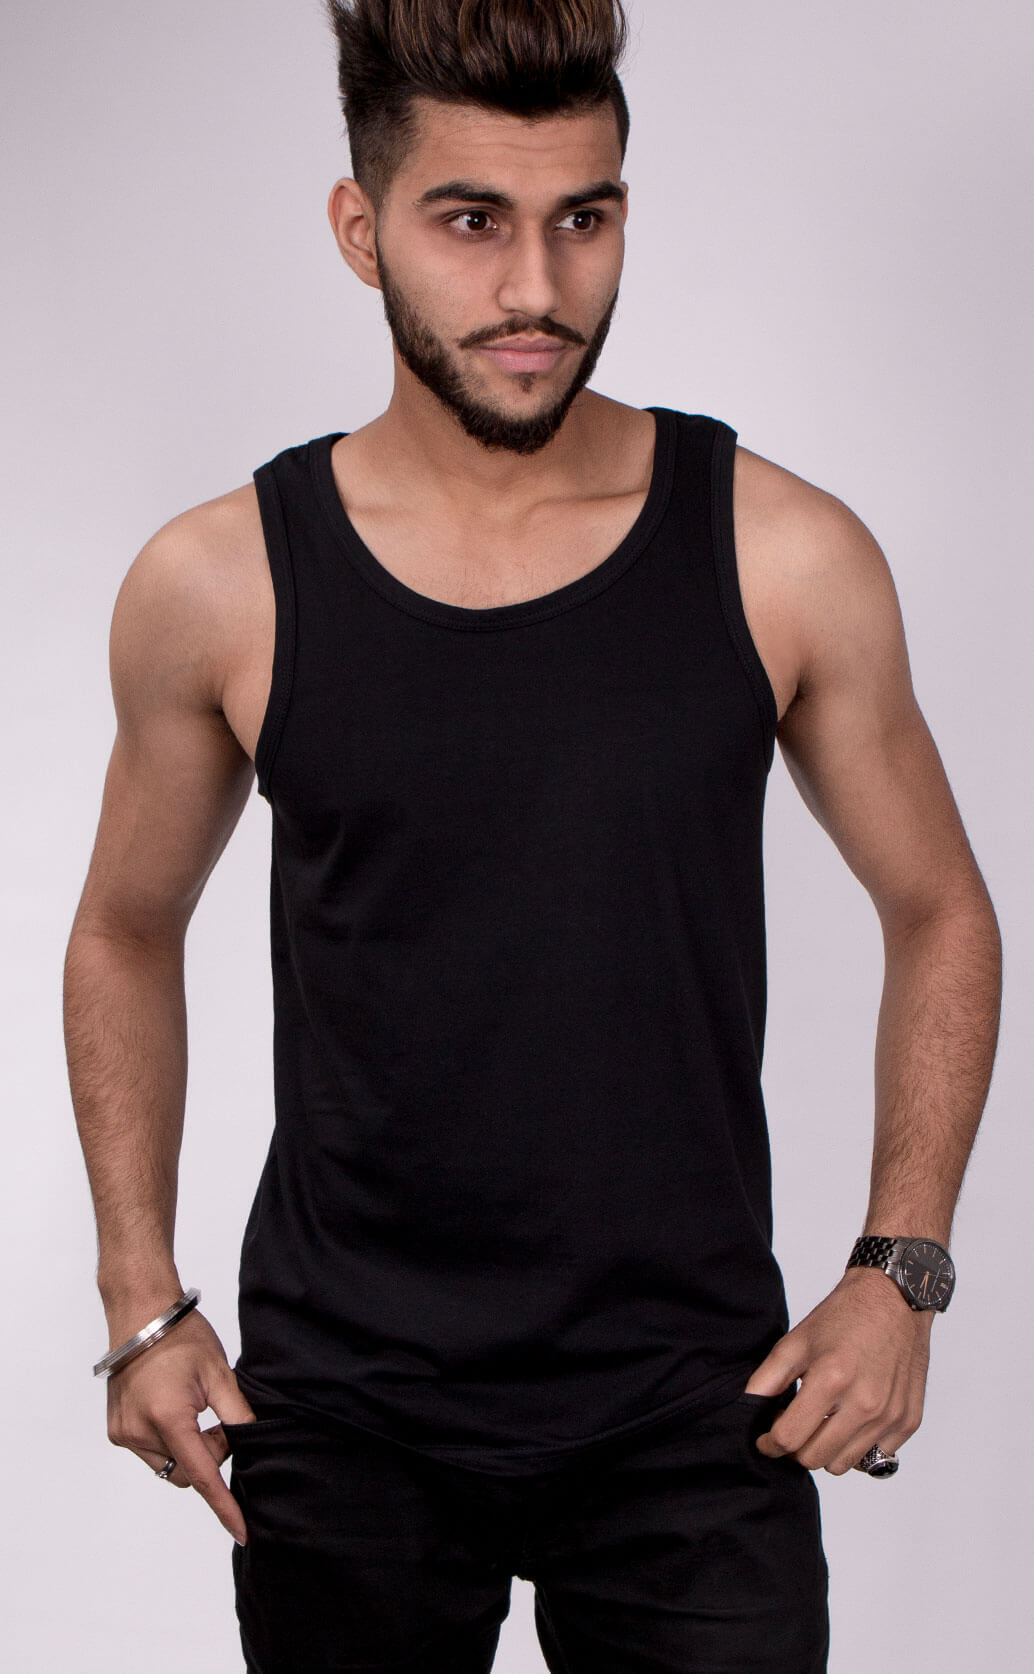 Size guide image for Mens Vest shirt type. Model is dressed in black